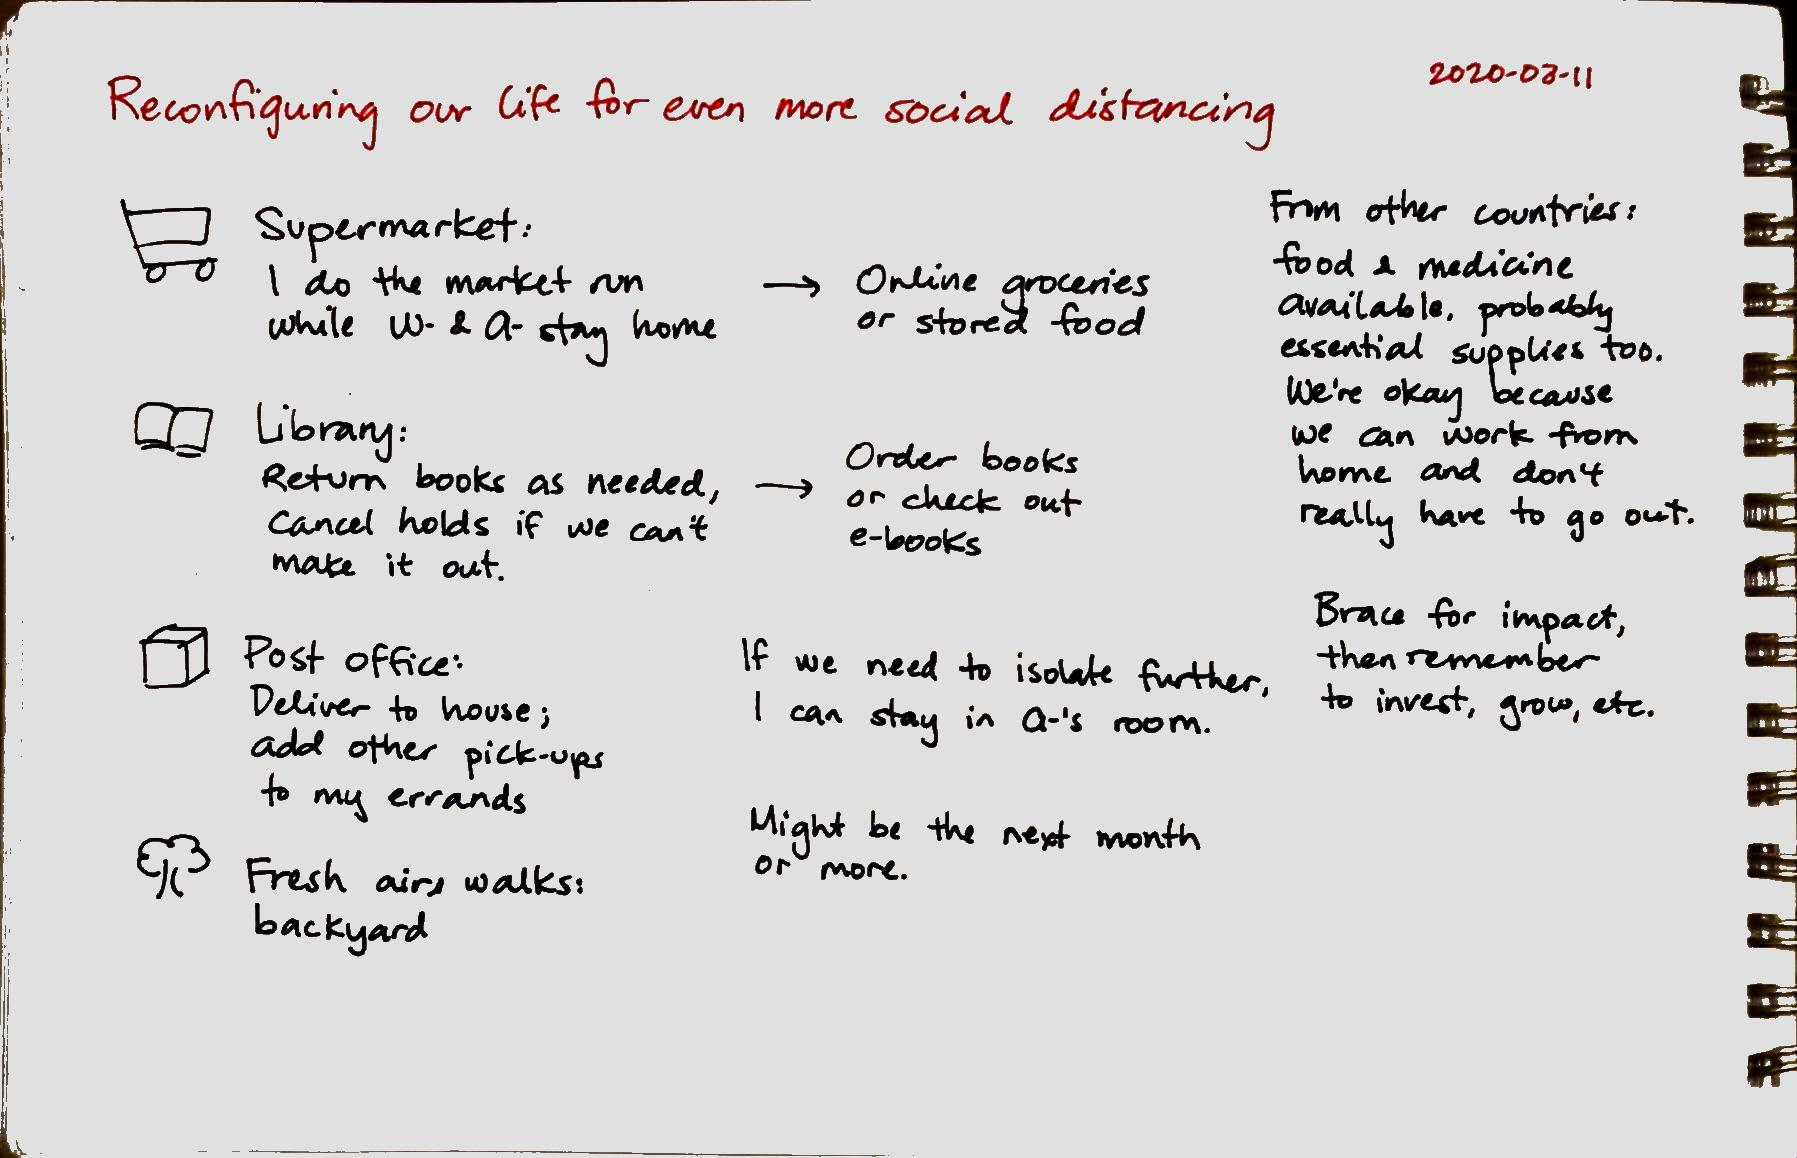 2020-03-11 Reconfiguring our lives for even more social distancing #covid.png